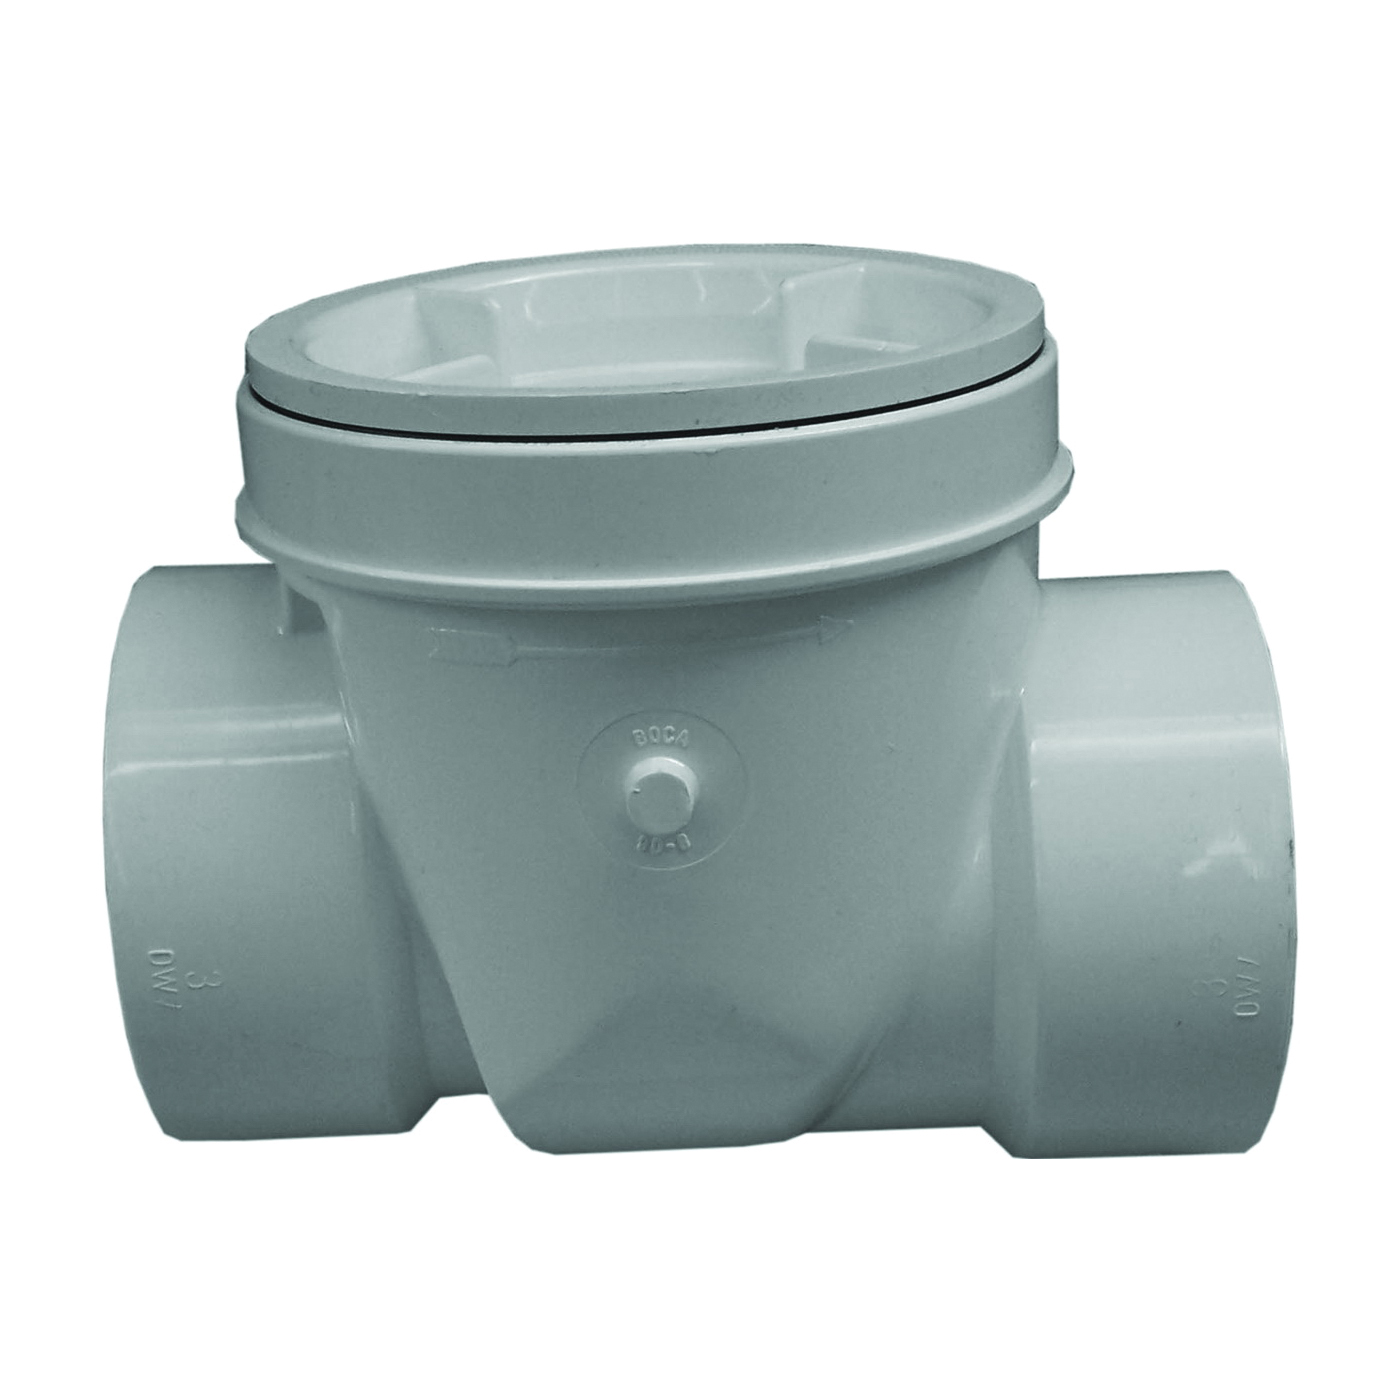 Picture of GENOVA 77640 Backwater Valve, 4 in Connection, PVC